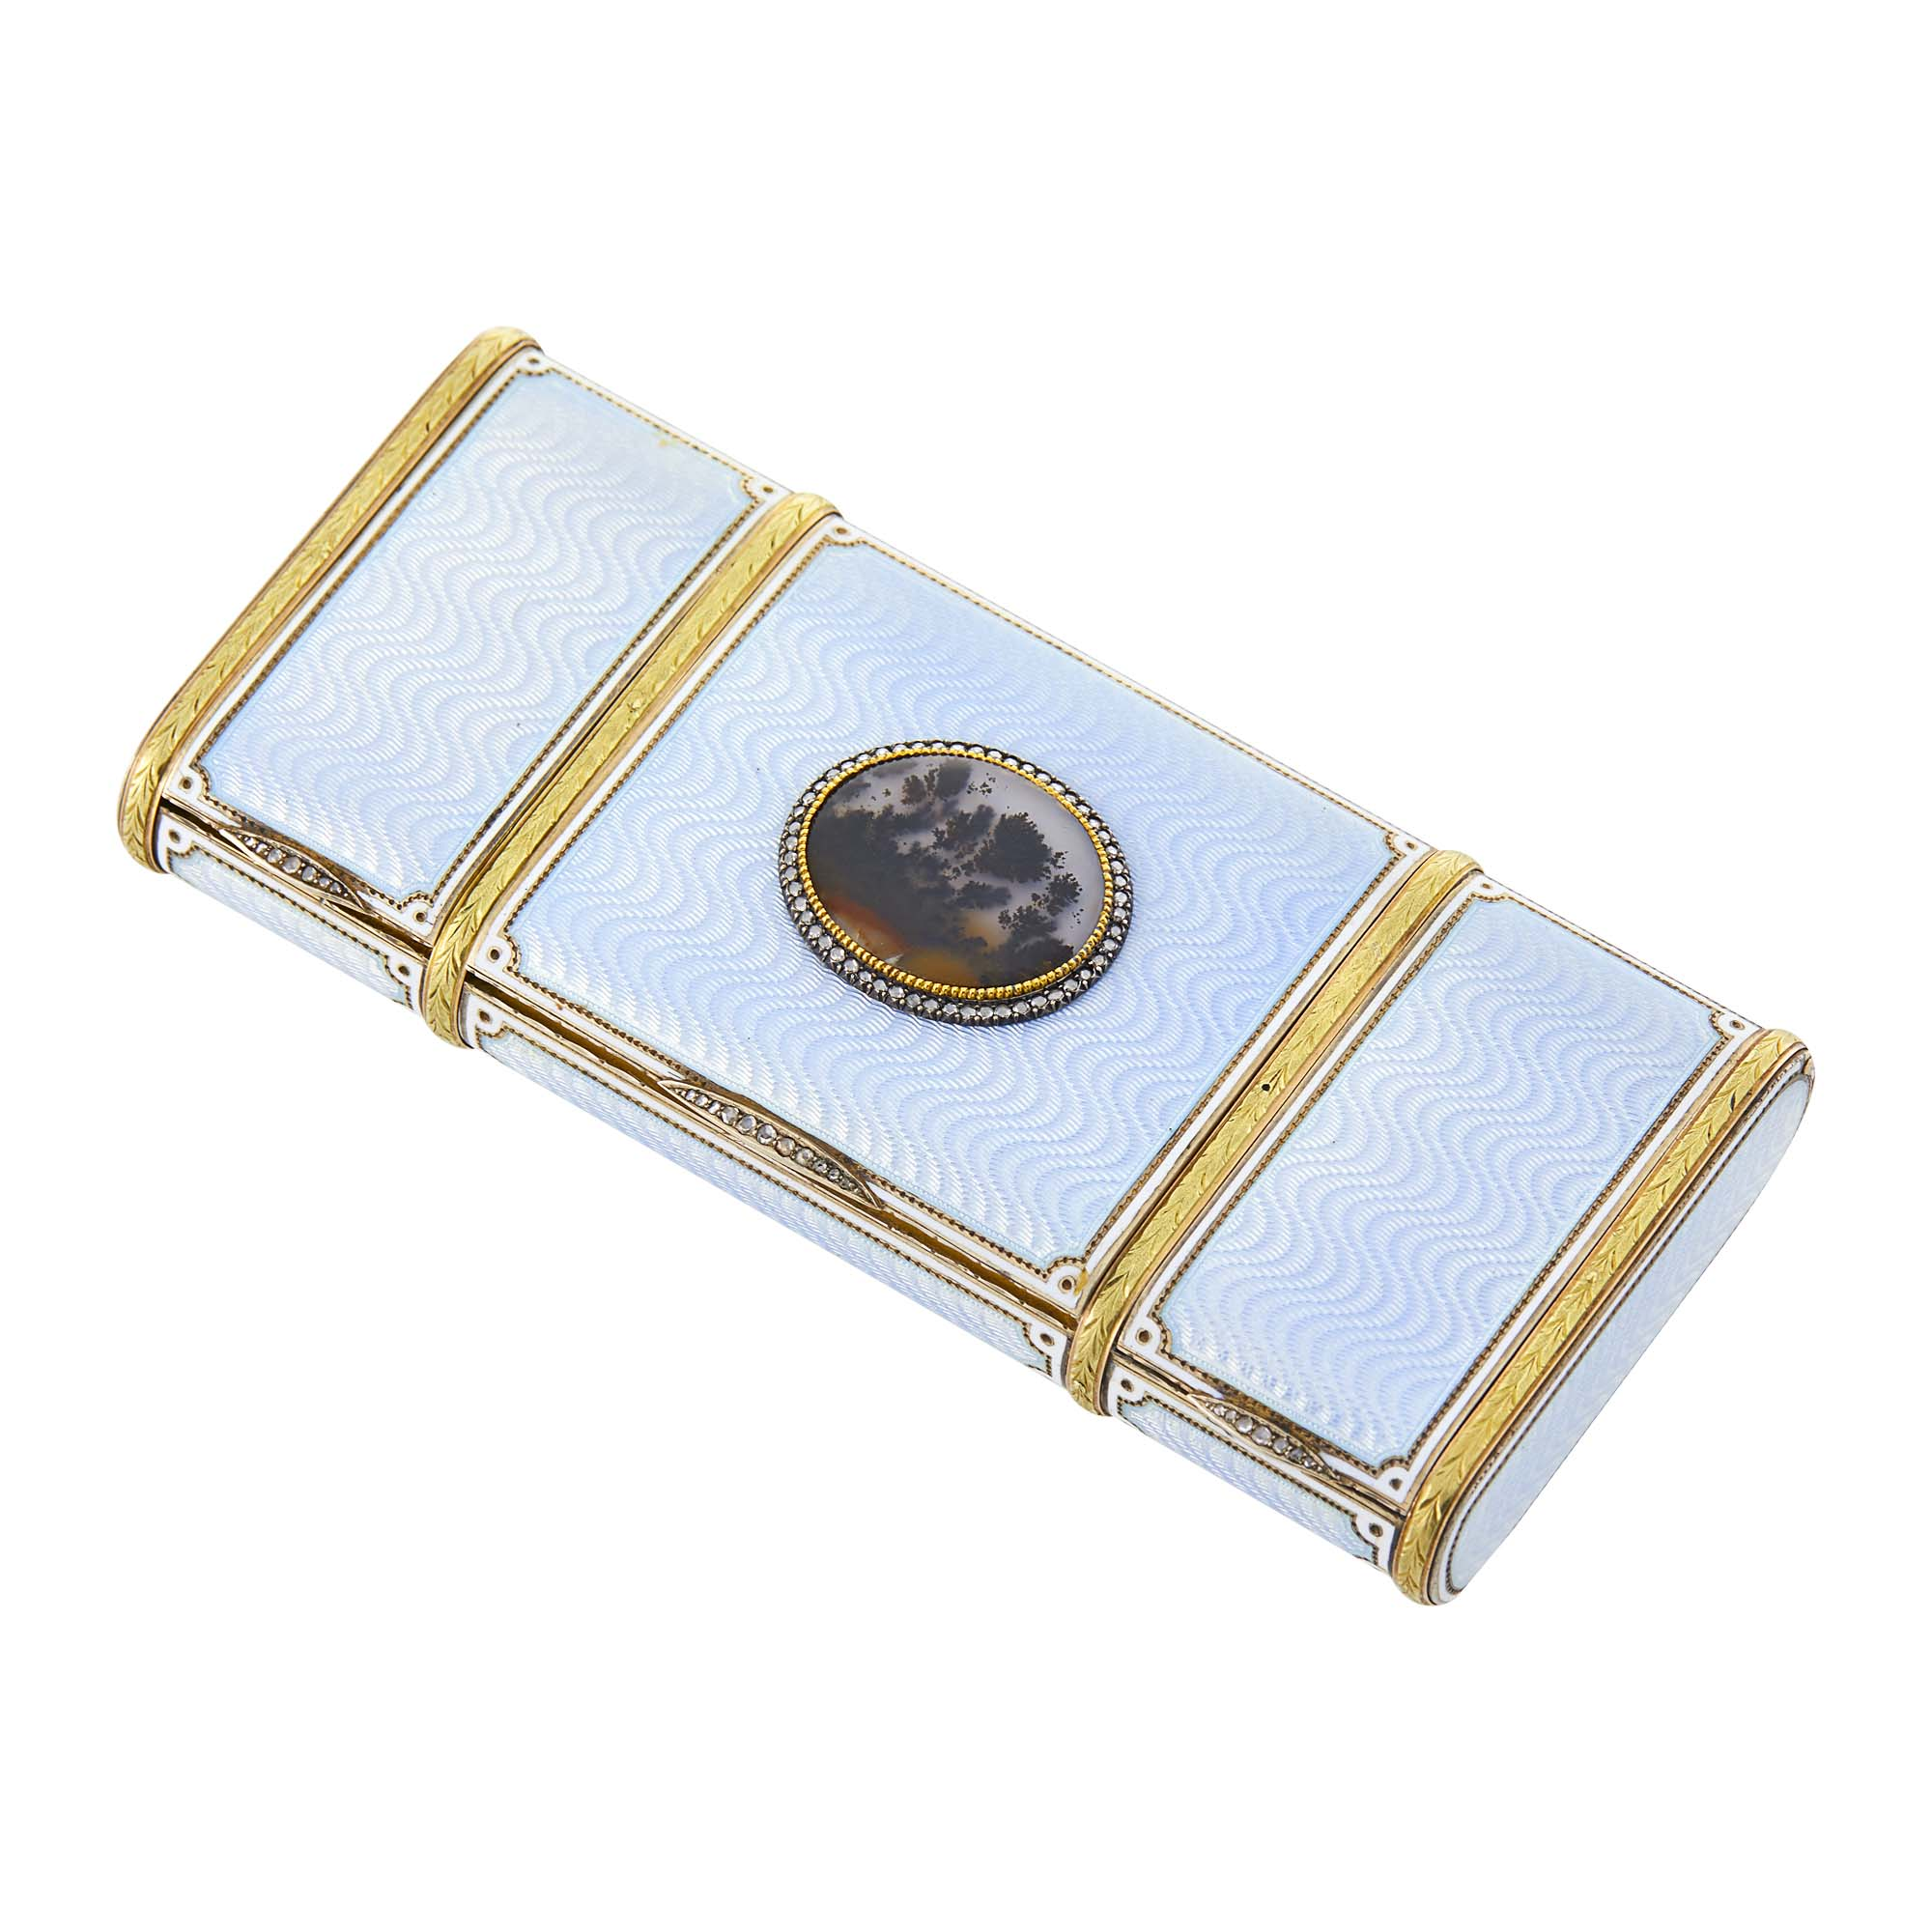 Lot image - Russian Gold, Silver-Gilt, Guilloché and Champlevé Enamel and Moss Agate Vanity Case